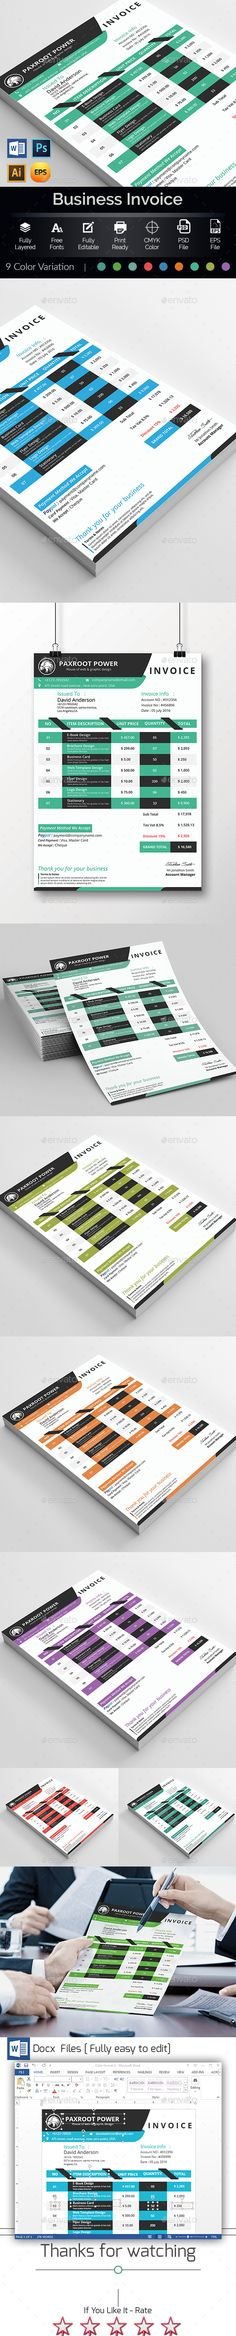 Job Analysis Worksheet Template Template, Worksheets and Job - data analysis template